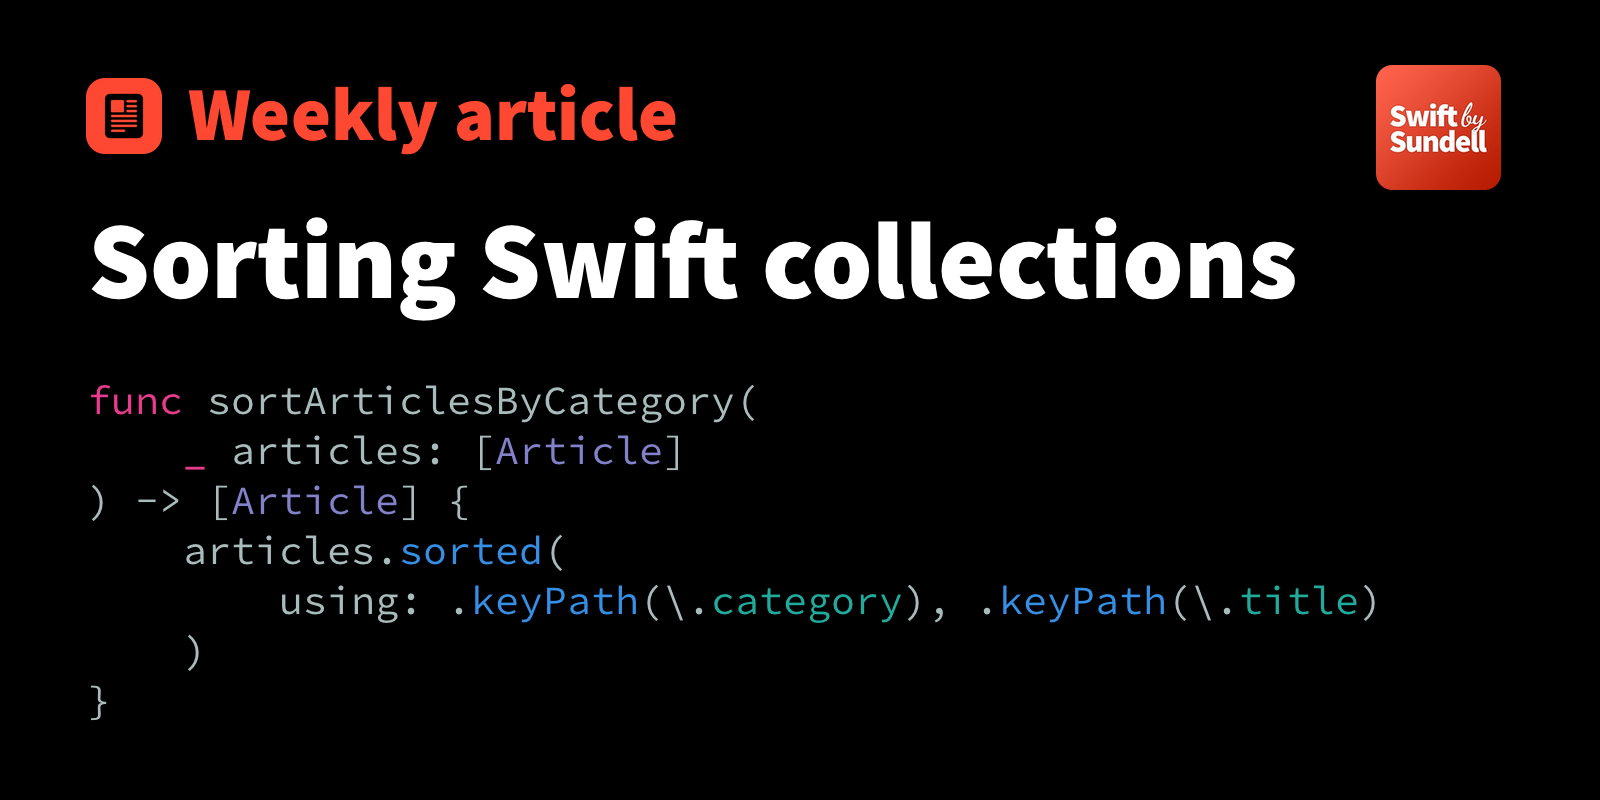 Sorting Swift collections